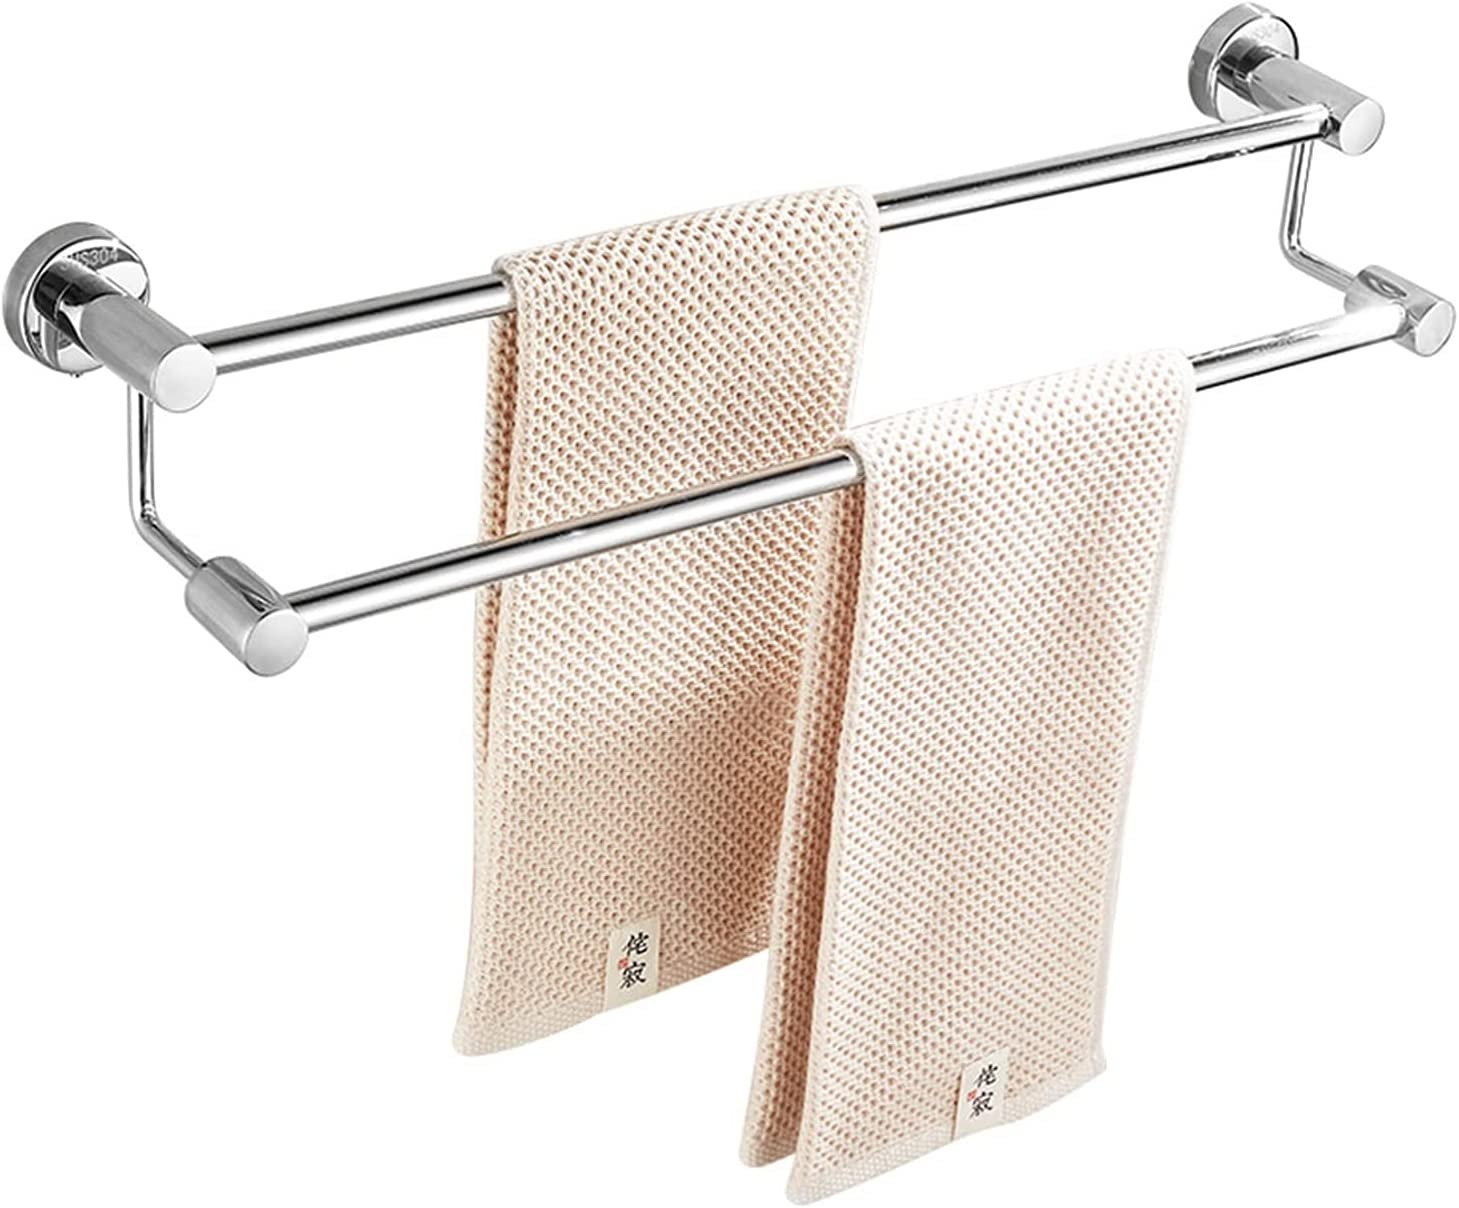 ZSPSHOP 304 Stainless Max 54% OFF Steel Towel Bathroom Bar Holder Max 64% OFF Wall